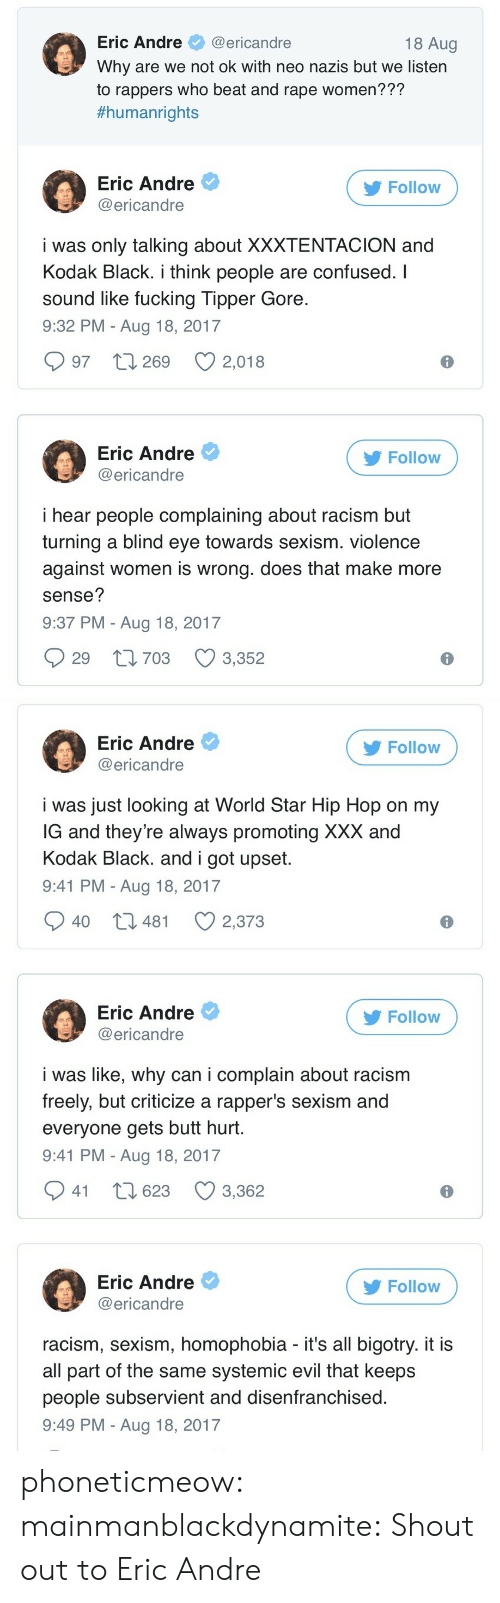 XXX: Eric Andre@ericandre  Why are we not ok with neo nazis but we listern  to rappers who beat and rape women???  #humanrights  18 Aug  Eric Andre  @ericandre  Follow  i was only talking about XXXTENTACION and  Kodak Black. i think people are confused. I  sound like fucking Tipper Gore  9:32 PM - Aug 18, 2017  997 t 269 2,018  Eric Andre  @ericandre  Follow  i hear people complaining about racism but  turning a blind eye towards sexism. violence  against women is wrong. does that make more  sense?  9:37 PM - Aug 18, 2017  29 t1703 3,352   Eric Andre  @ericandre  Follow  i was just looking at World Star Hip Hop on my  G and they're always promoting XXX and  Kodak Black. and i got upset  9:41 PM - Aug 18, 2017  40 t3 481  2,373  Eric Andre  @ericandre  Follow  i was like, why can i complain about racism  freely, but criticize a rapper's sexism and  everyone gets butt hurt  9:41 PM - Aug 18, 2017  941 t 623 3,362  Eric Andre  @ericandre  Follow  racism, sexism, homophobia - it's all bigotry. it i:s  all part of the same systemic evil that keeps  people subservient and disenfranchised  9:49 PM - Aug 18, 2017 phoneticmeow:  mainmanblackdynamite: Shout out to Eric Andre